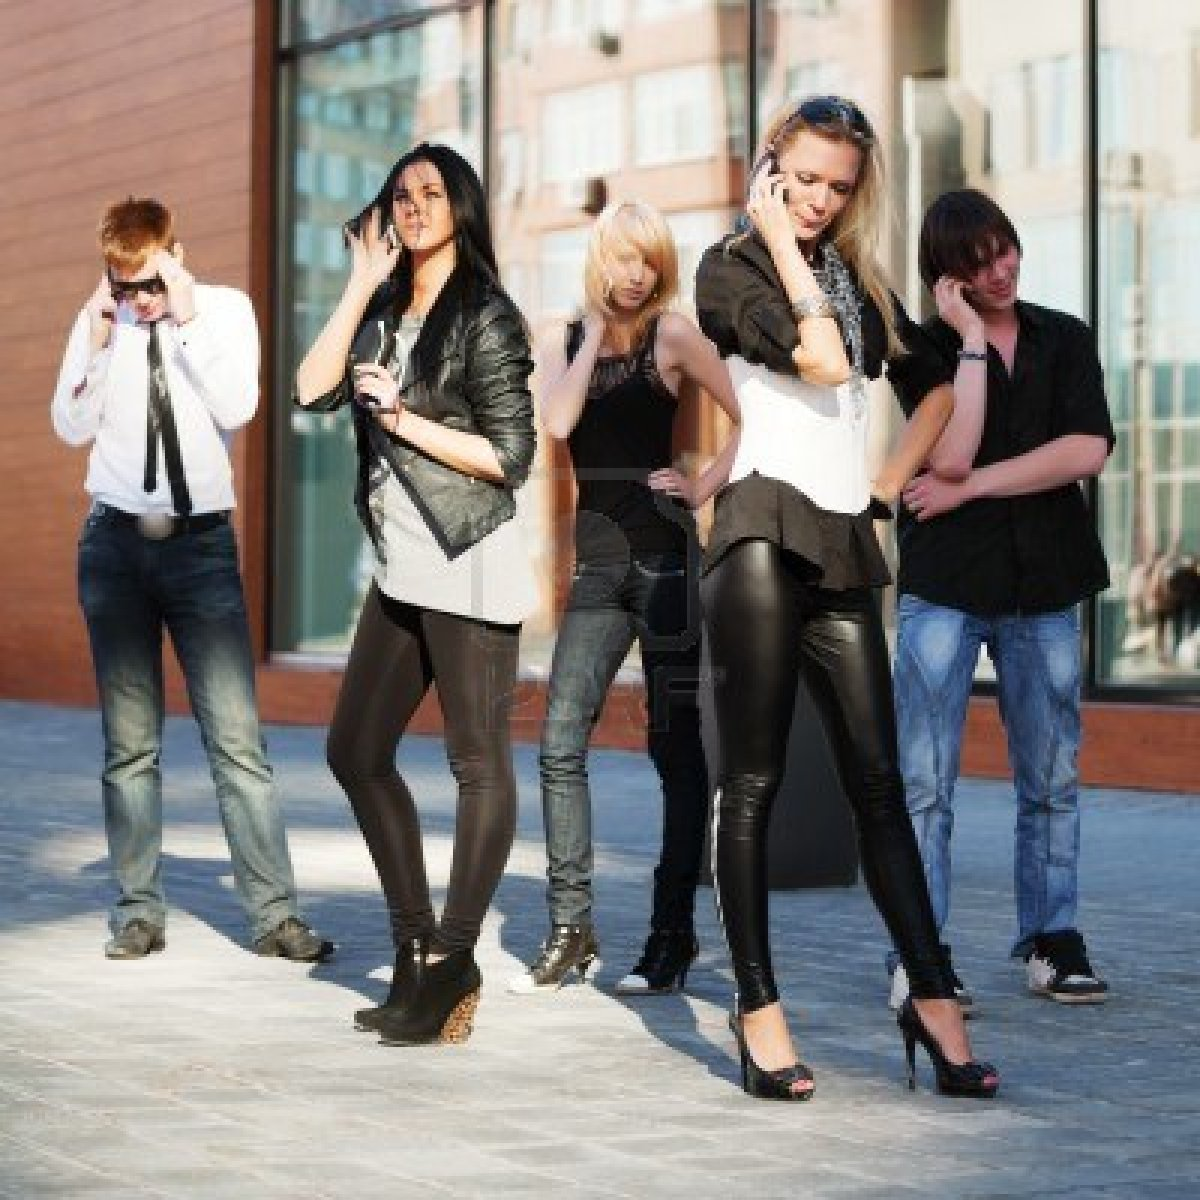 9963112-young-people-calling-on-the-mobile-phones